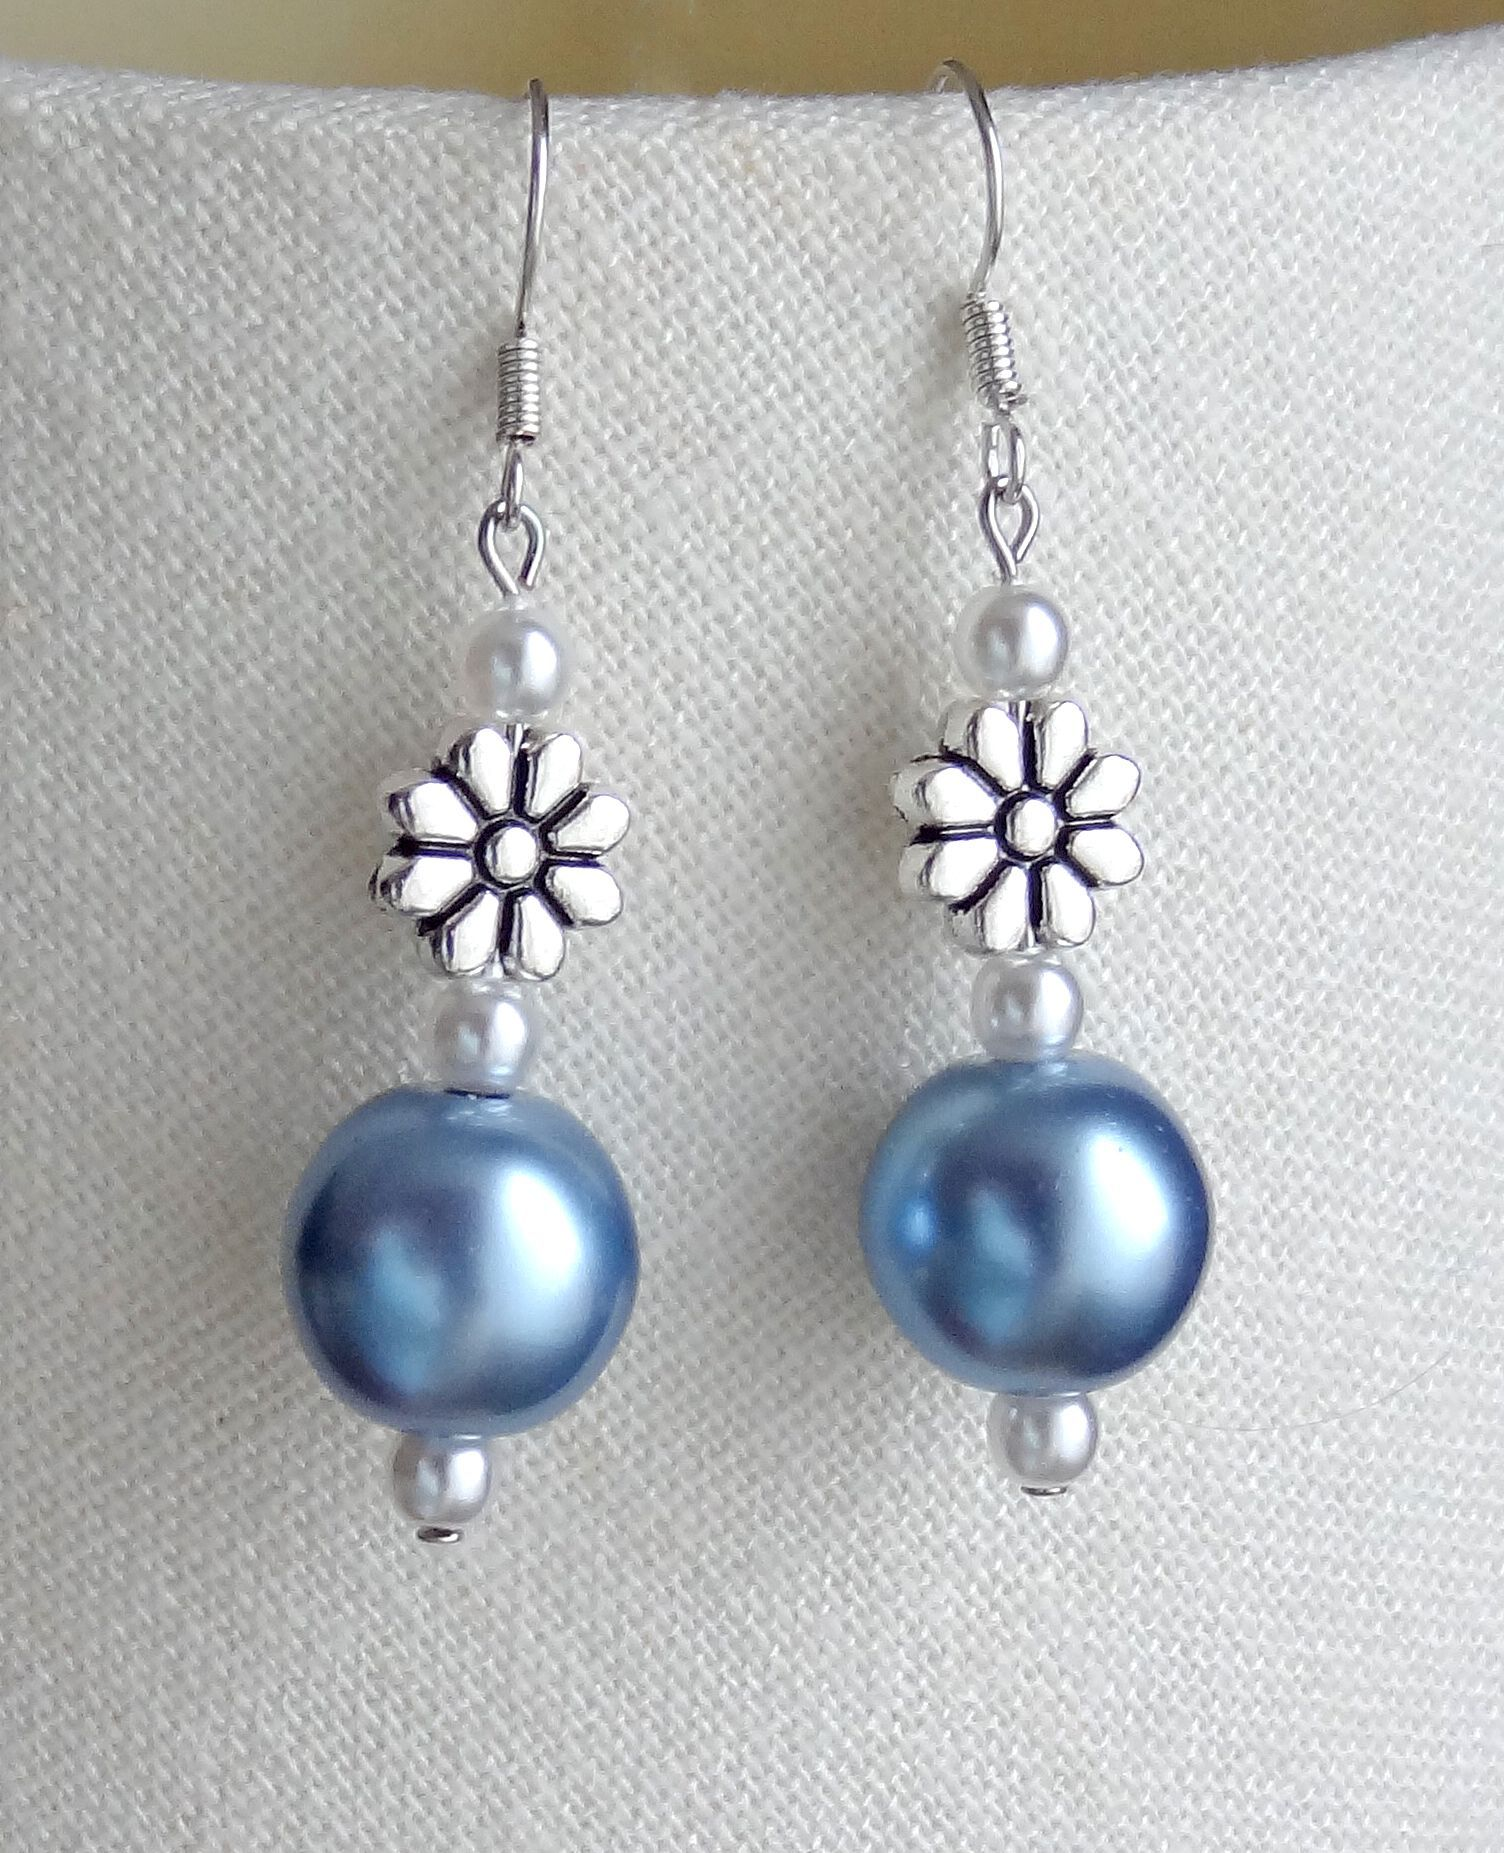 daisy & light blue earrings - to match necklace | diy jewelry